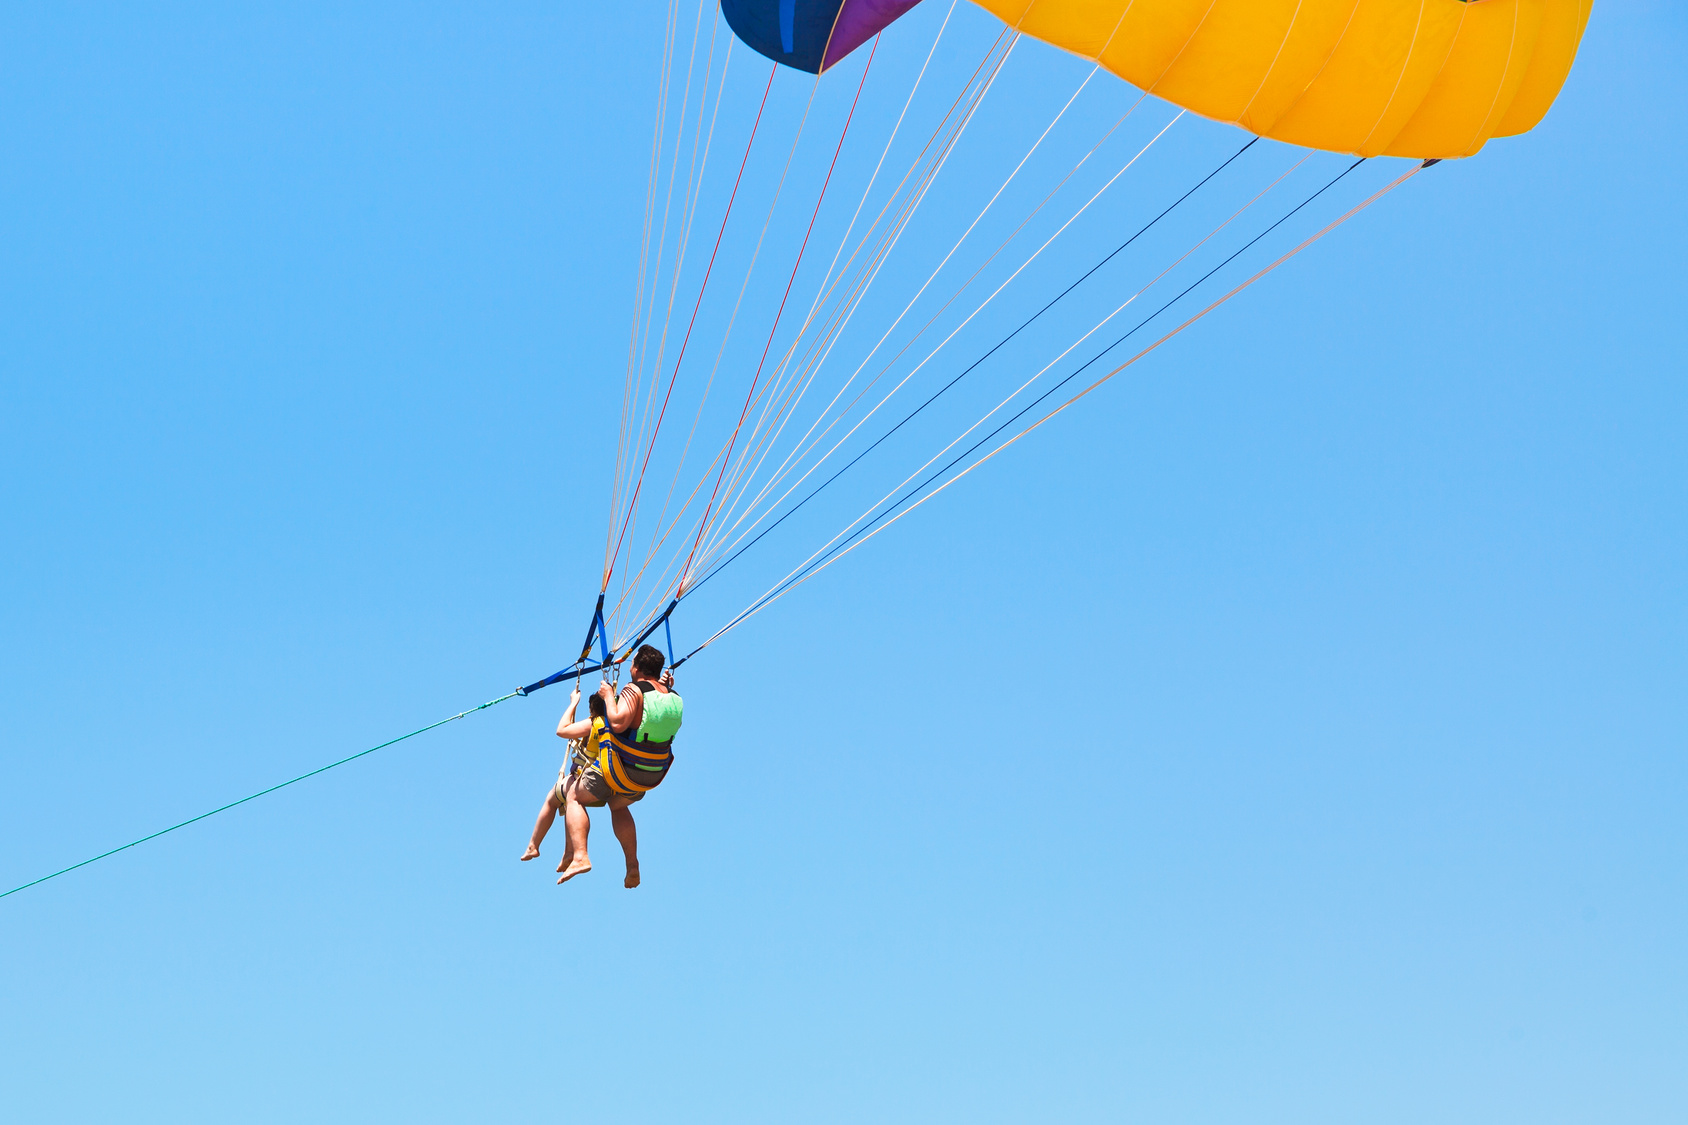 couple people parasailing on parachute in blue sky